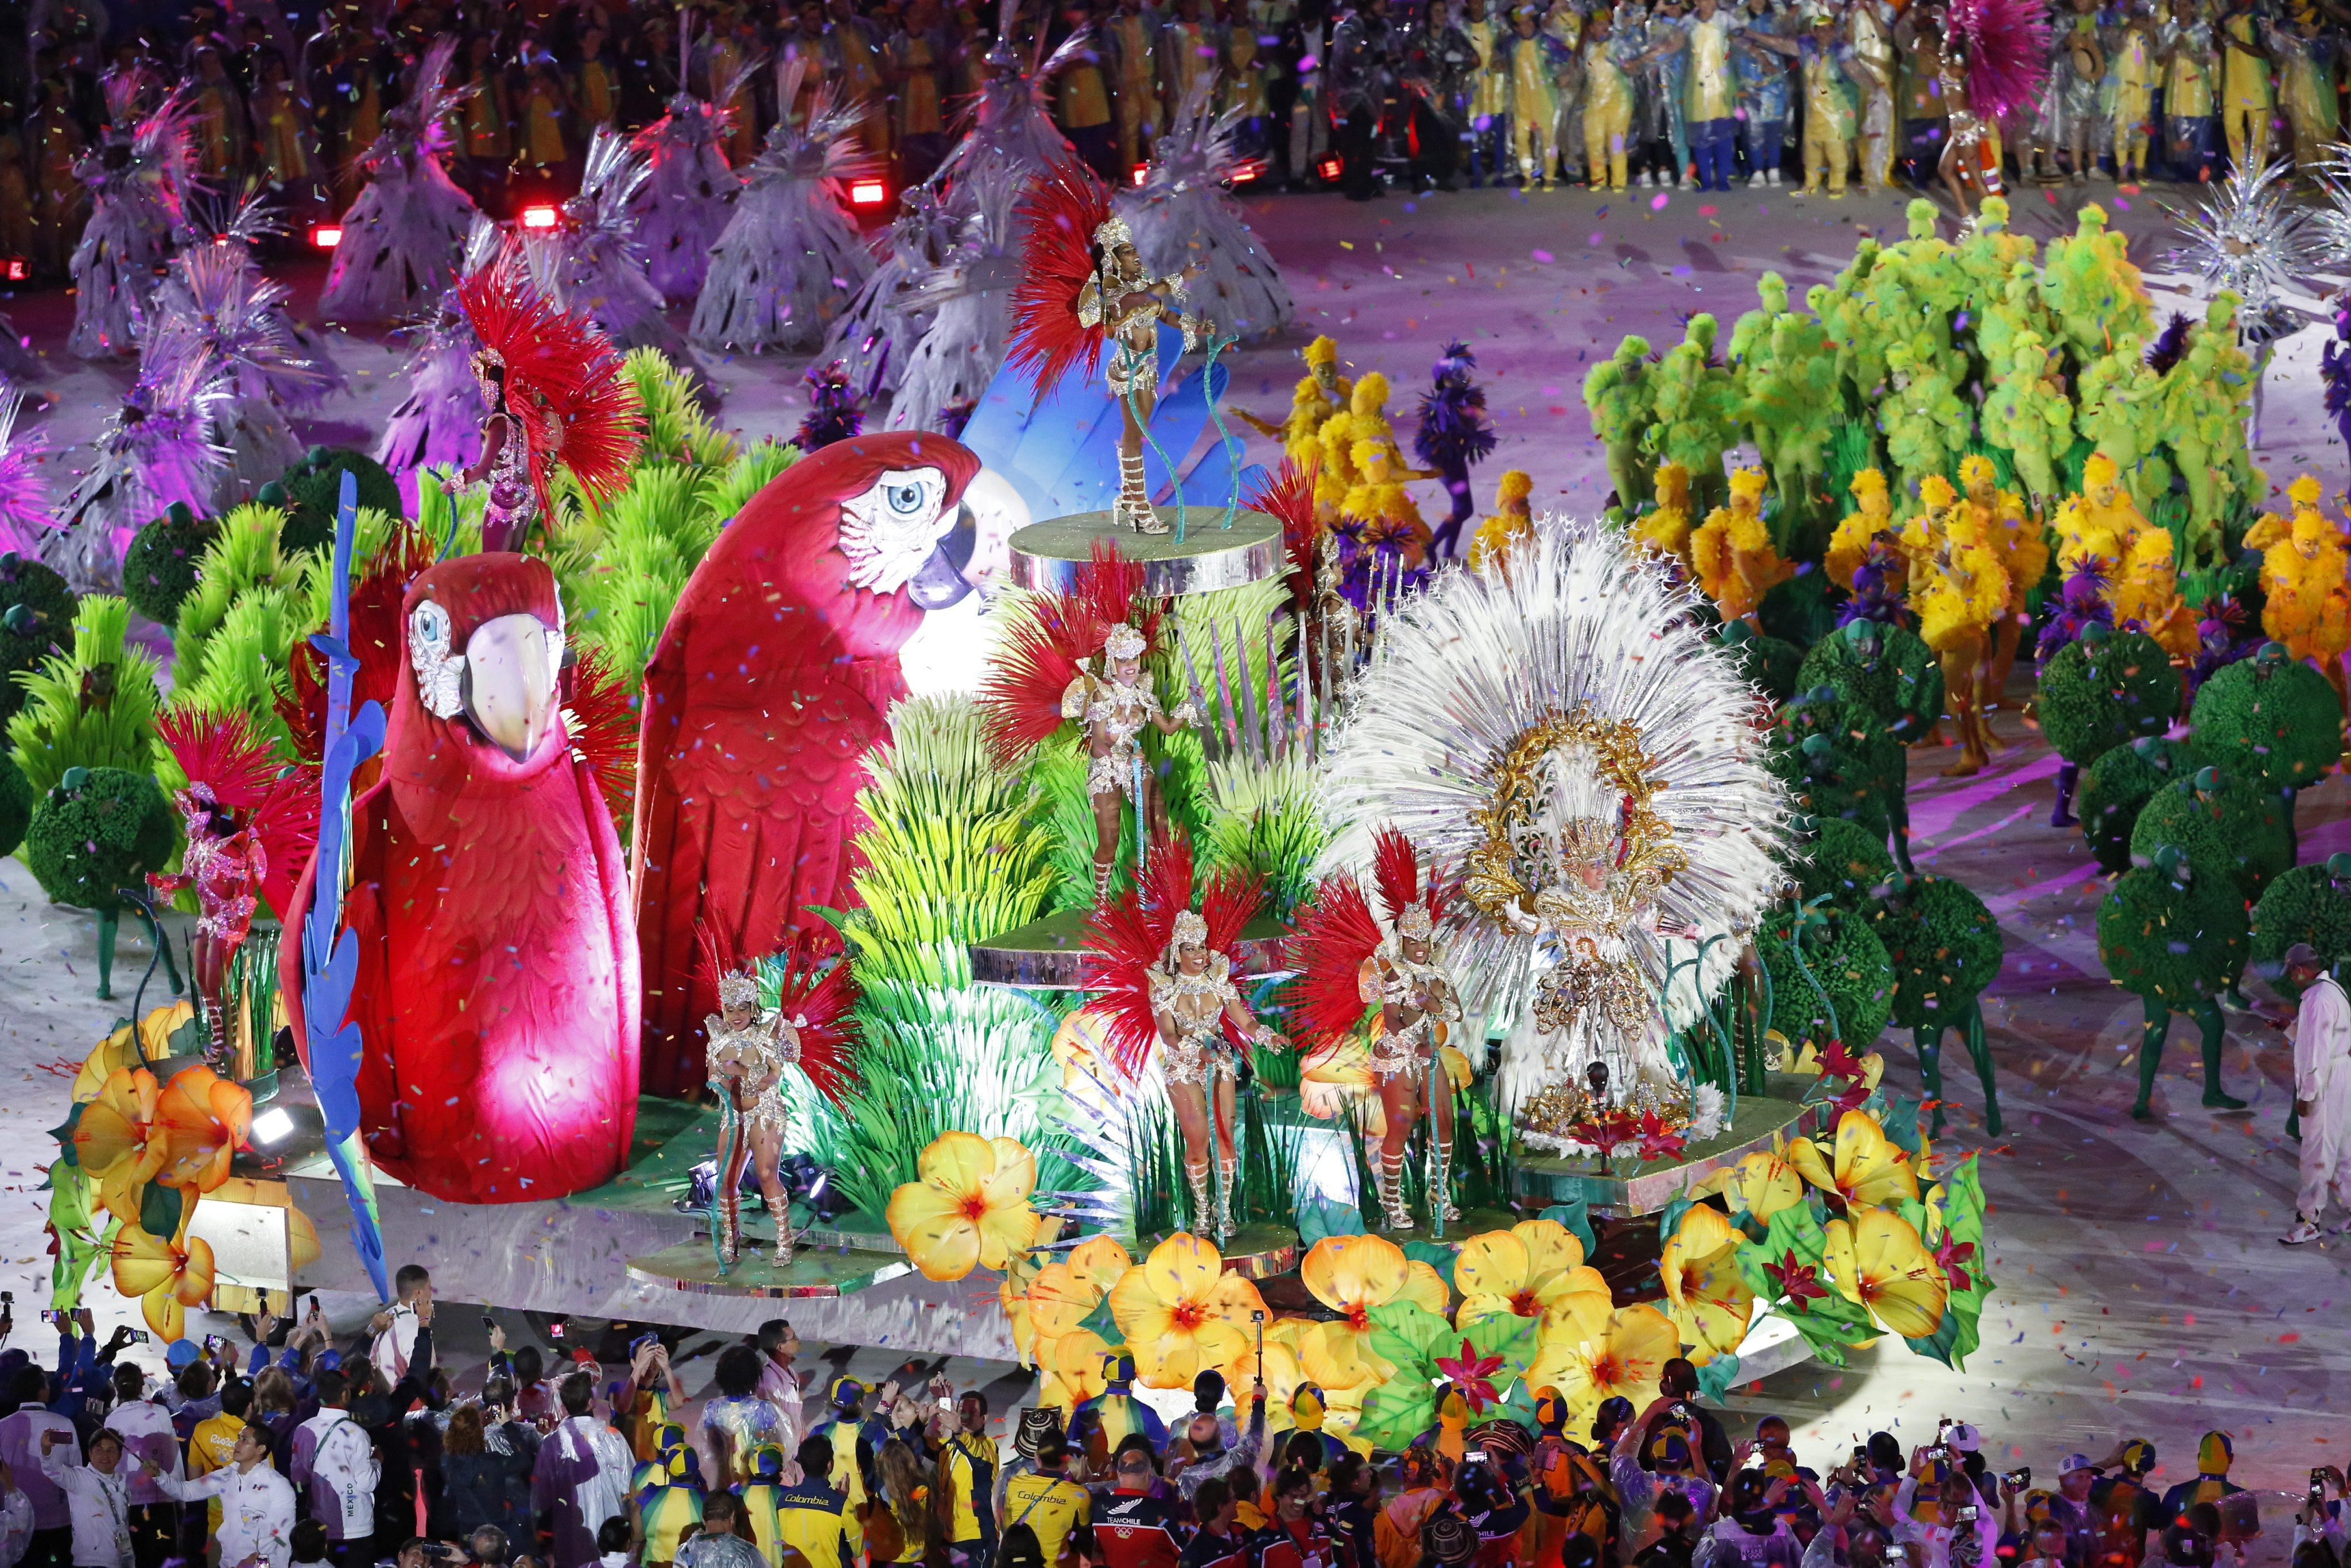 . Rio De Janeiro (Brazil), 22/08/2016.- Carnival trucks parade during the Closing Ceremony of the Rio 2016 Olympic Games at the Maracana Stadium in Rio de Janeiro, Brazil, 21 August 2016. (Brasil) EFE/EPA/MICHAEL REYNOLDS